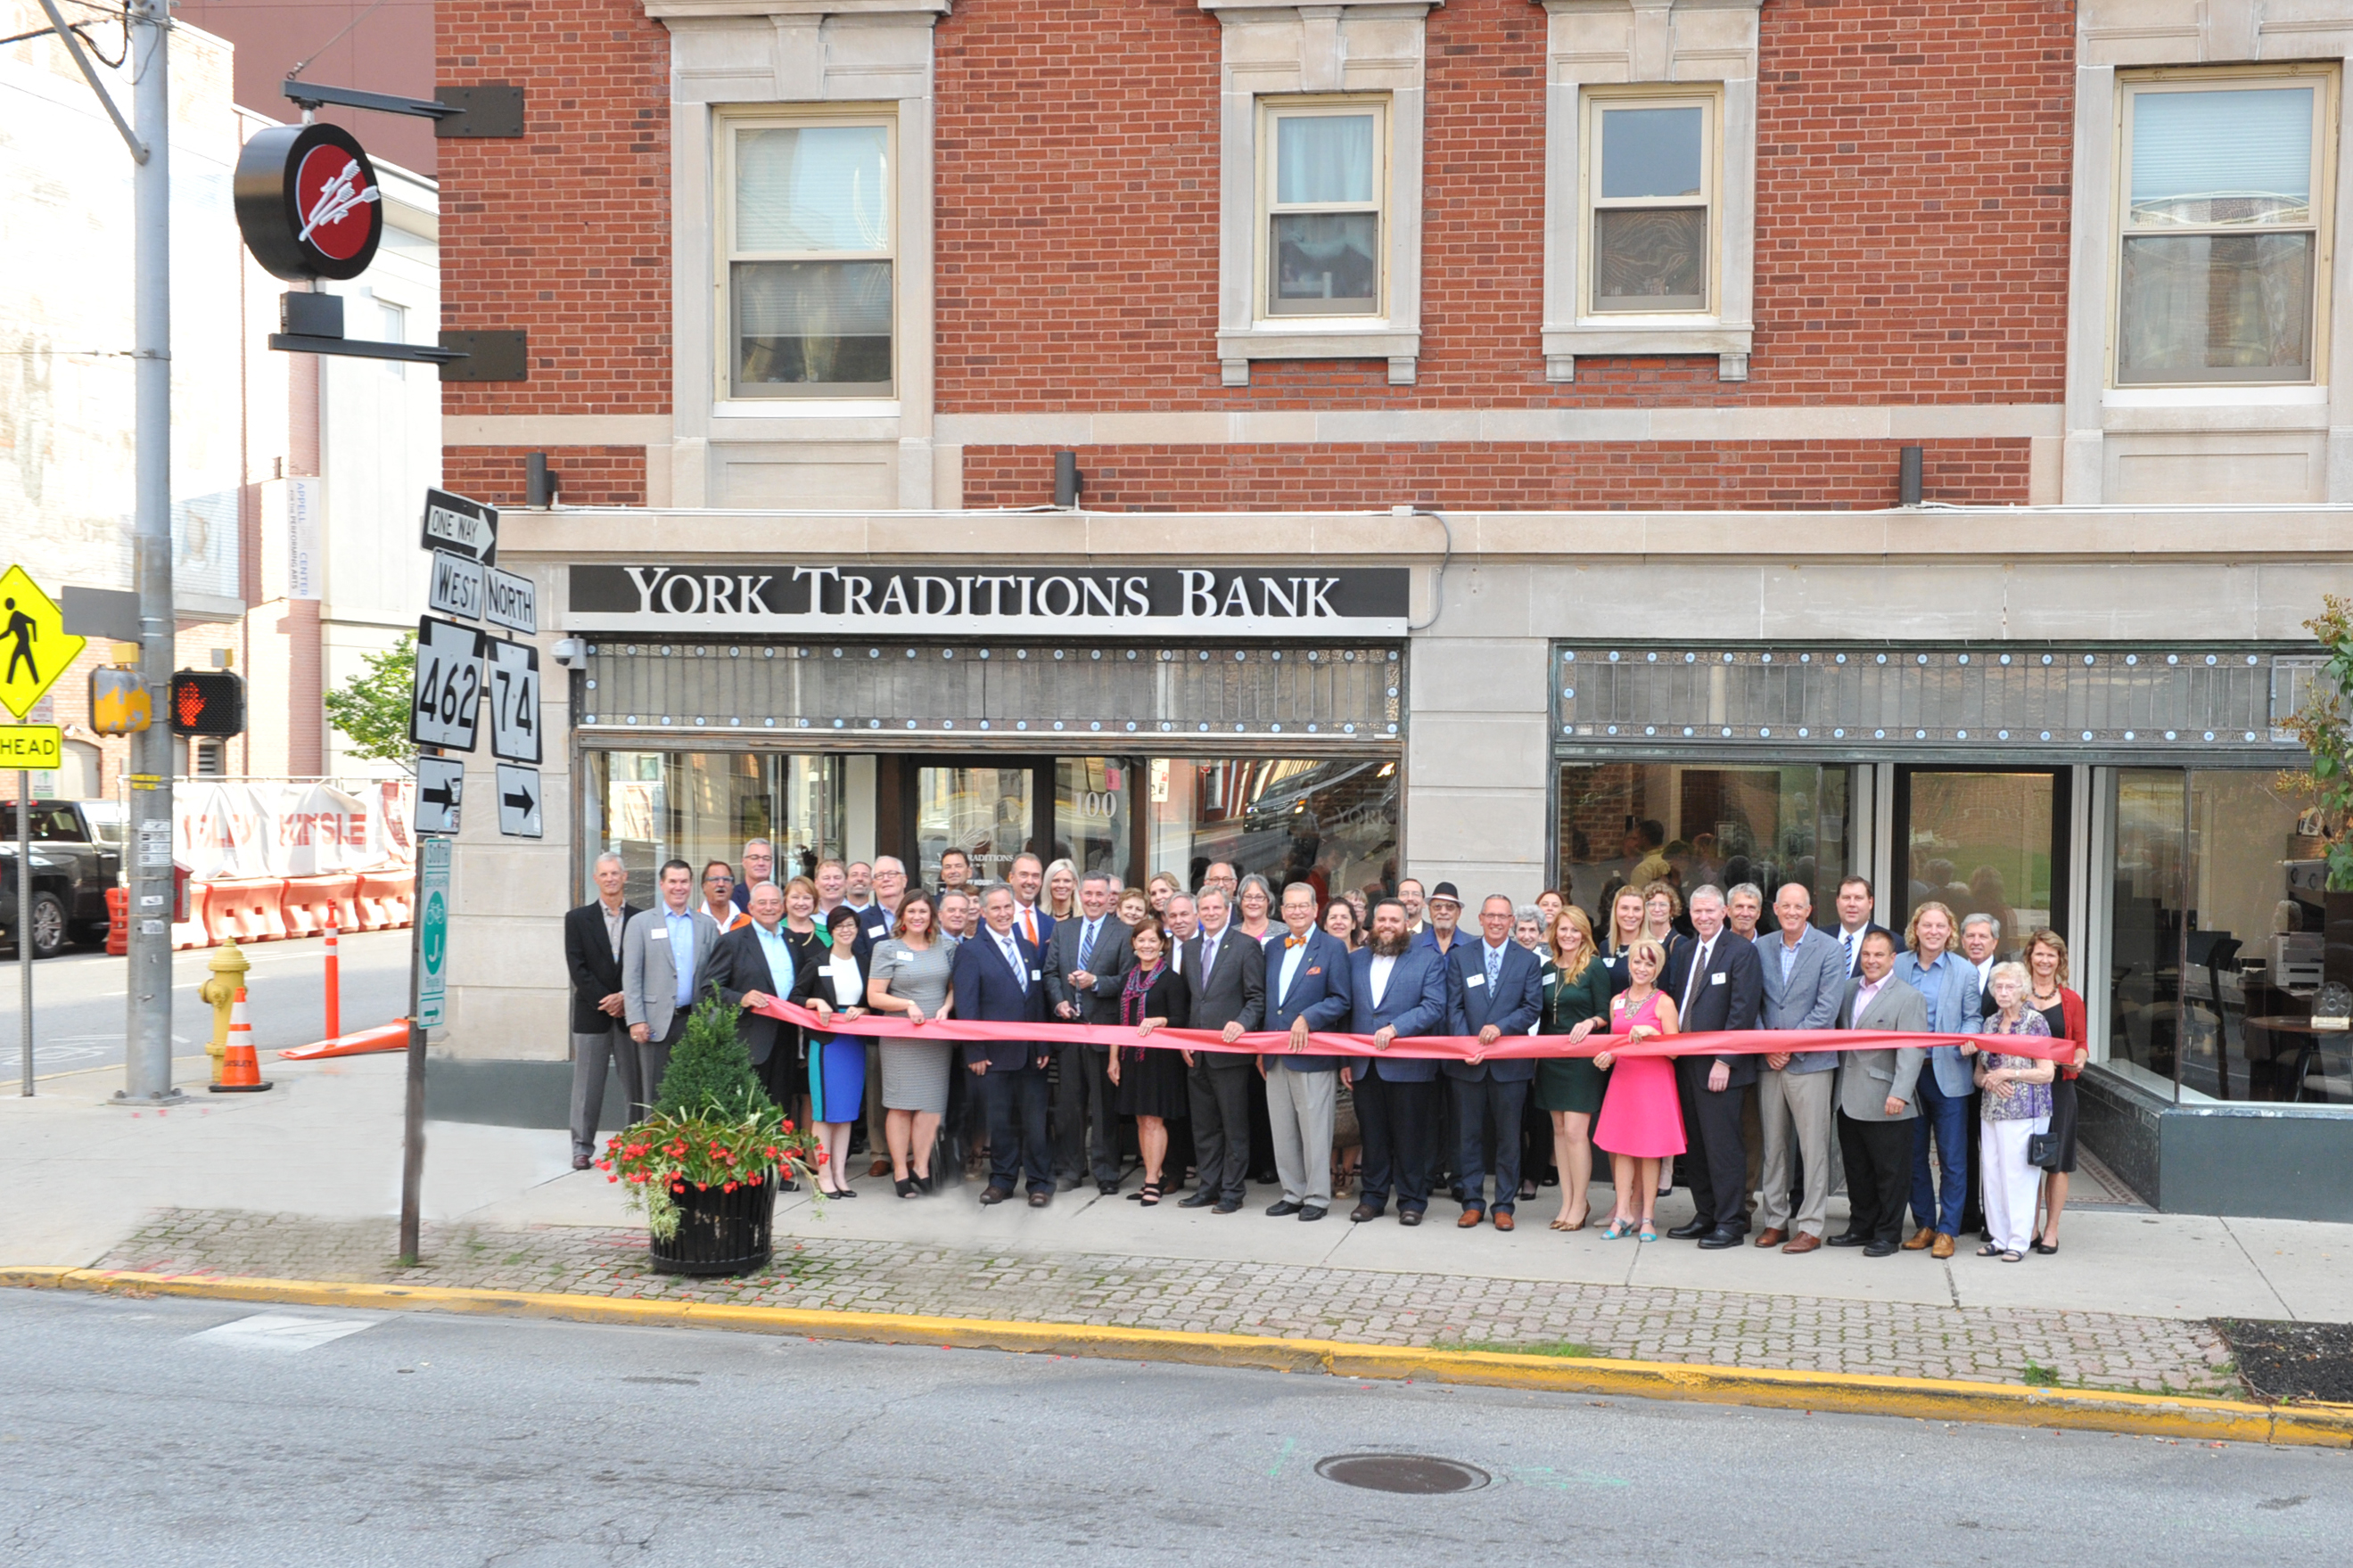 Representatives from the York community join the management of Traditions Bank for a ribbon cutting ceremony on the afternoon of Tuesday, October 2, 2018 at the site of their new Downtown York branch at 100 North George Street.